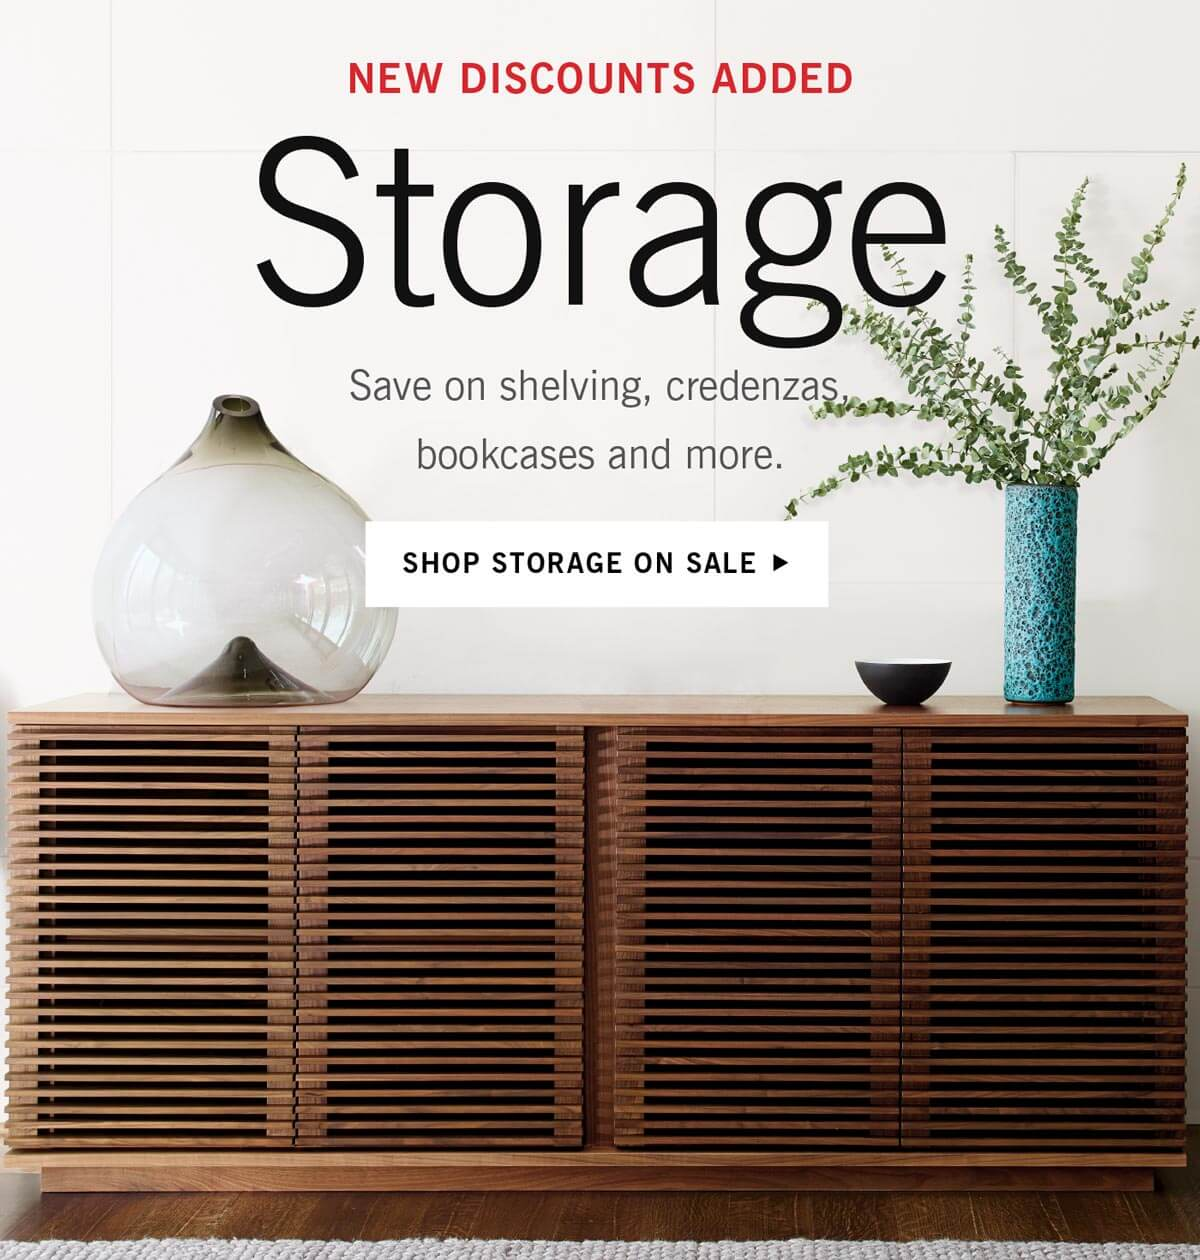 Save on shelving, credenzas, bookcases and more.